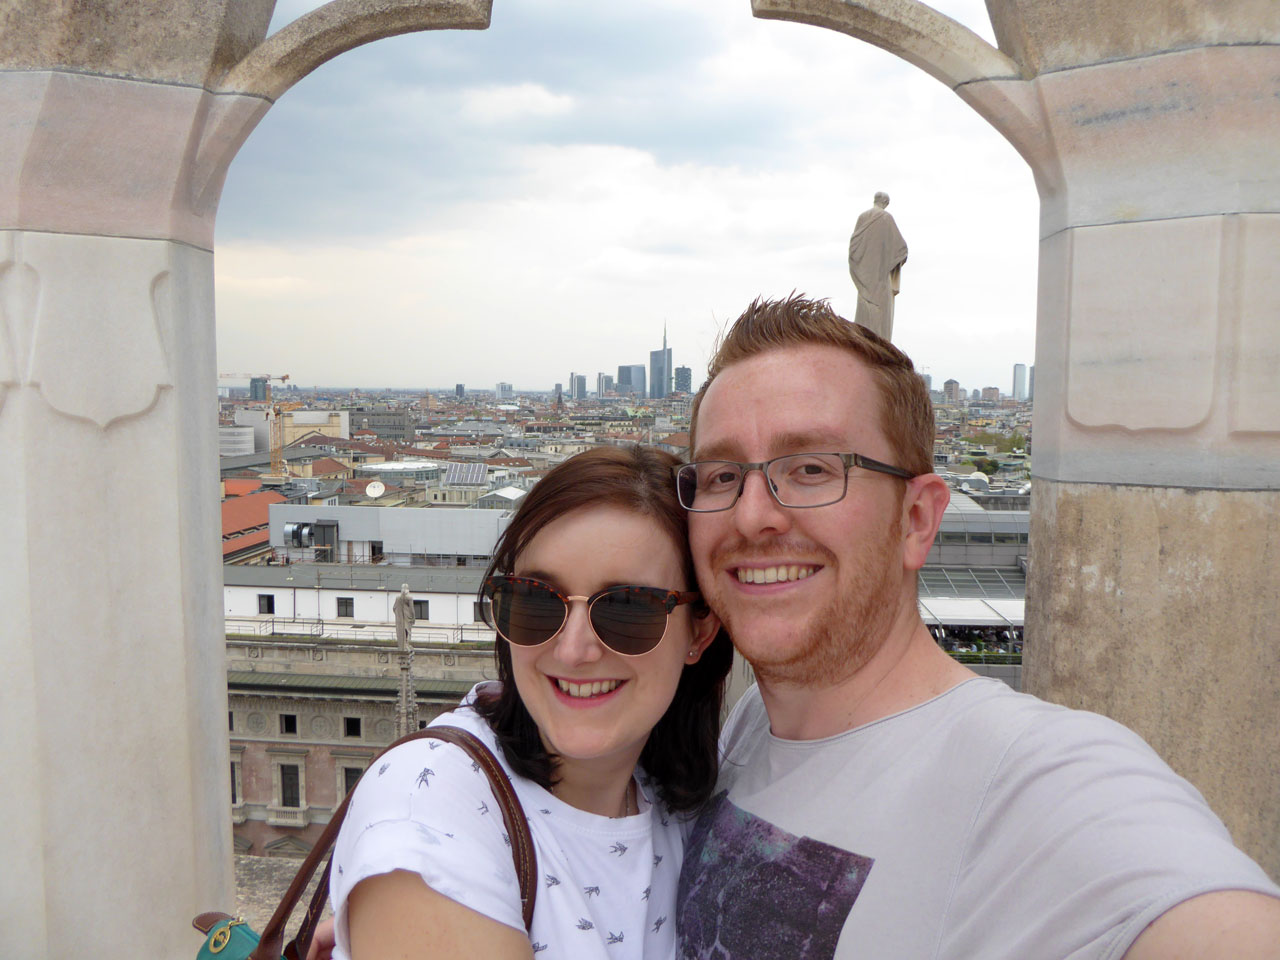 Me and Polly on the rooftop of the Duomo, Milan